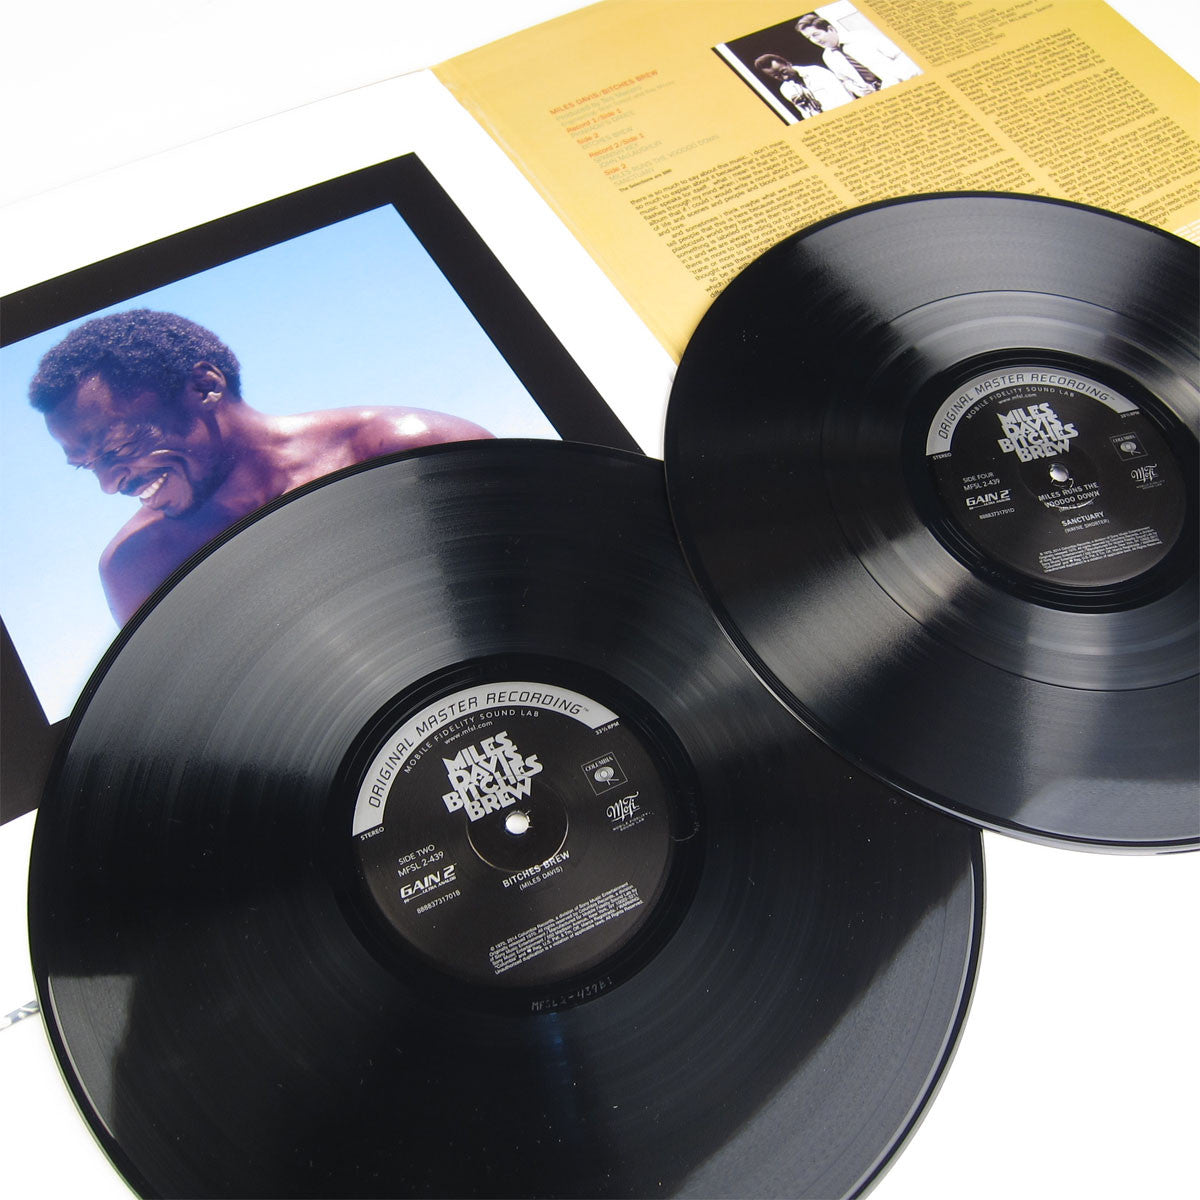 Miles Davis: Bitches Brew (Numbered Limited Edition 180g) Vinyl 2LP gatefold